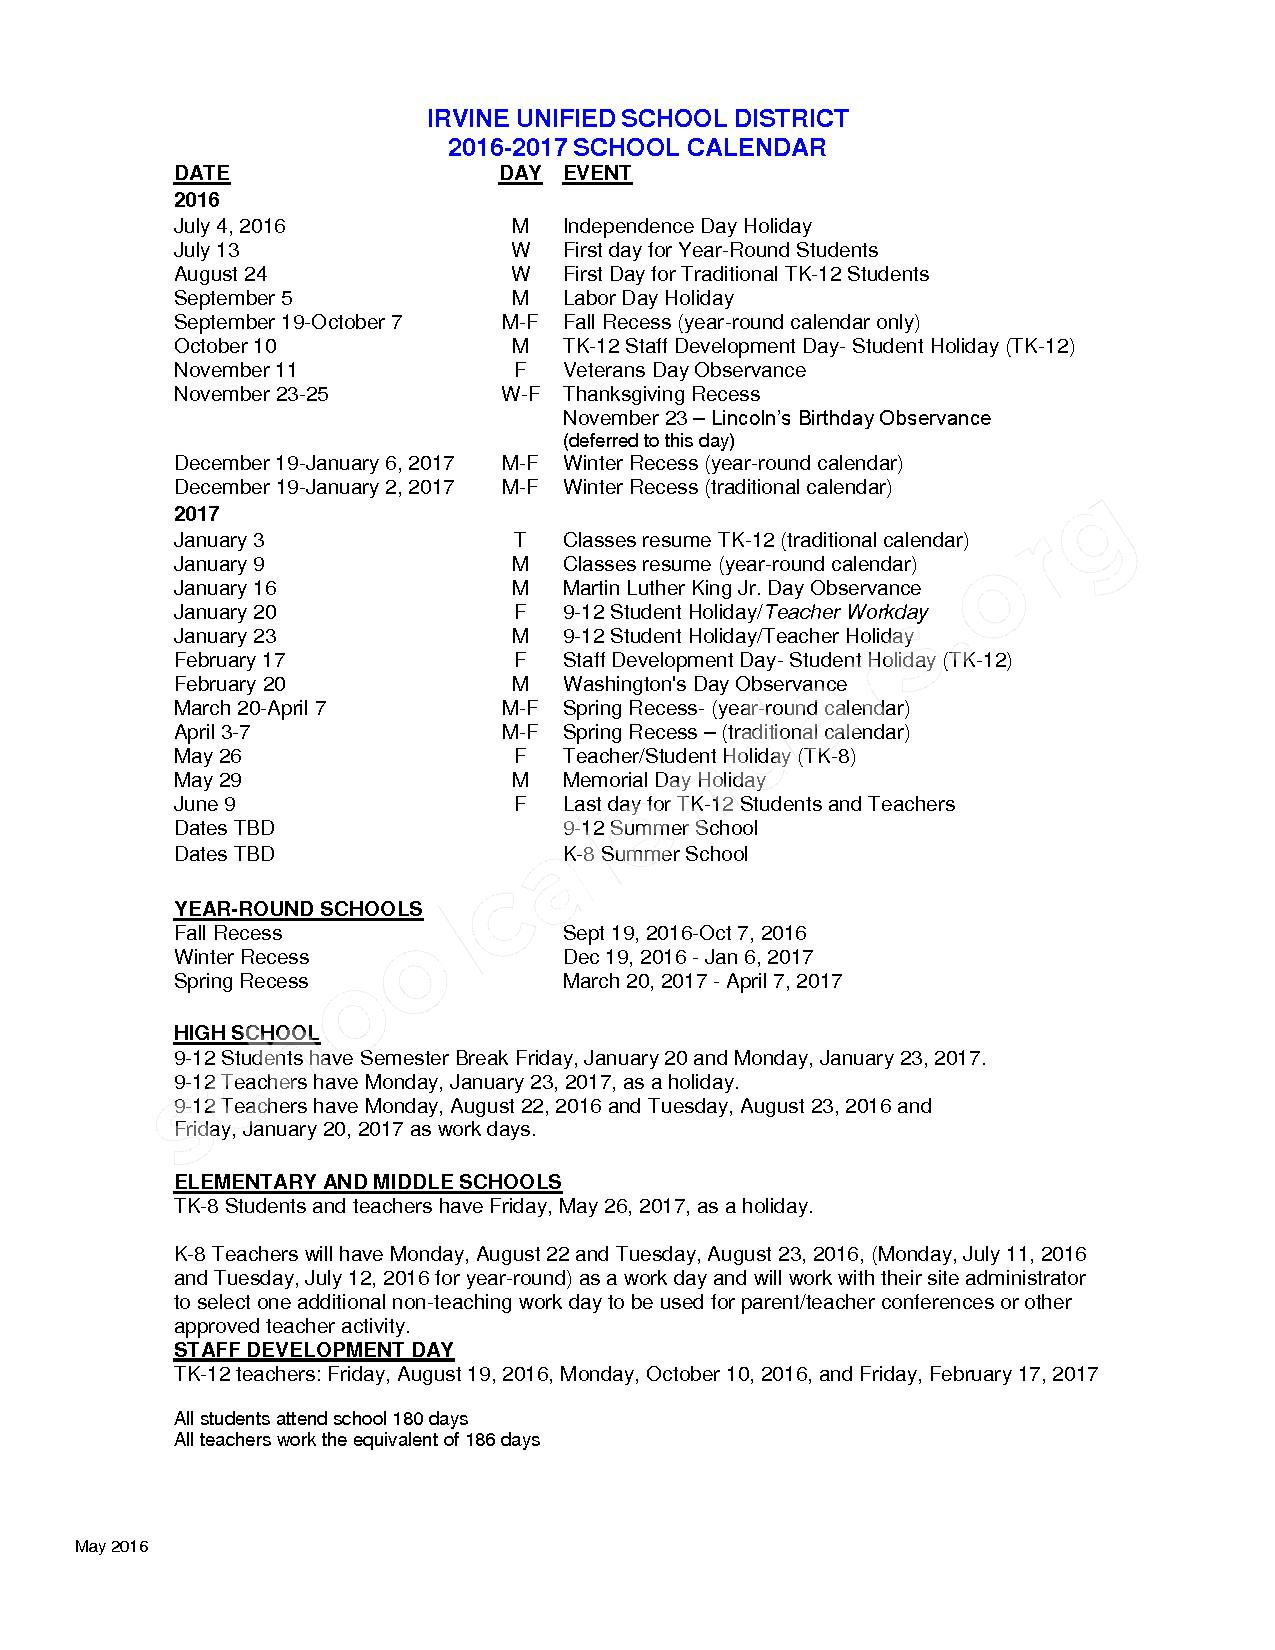 2016 - 2017 District Calendar – Irvine Unified School District – page 1